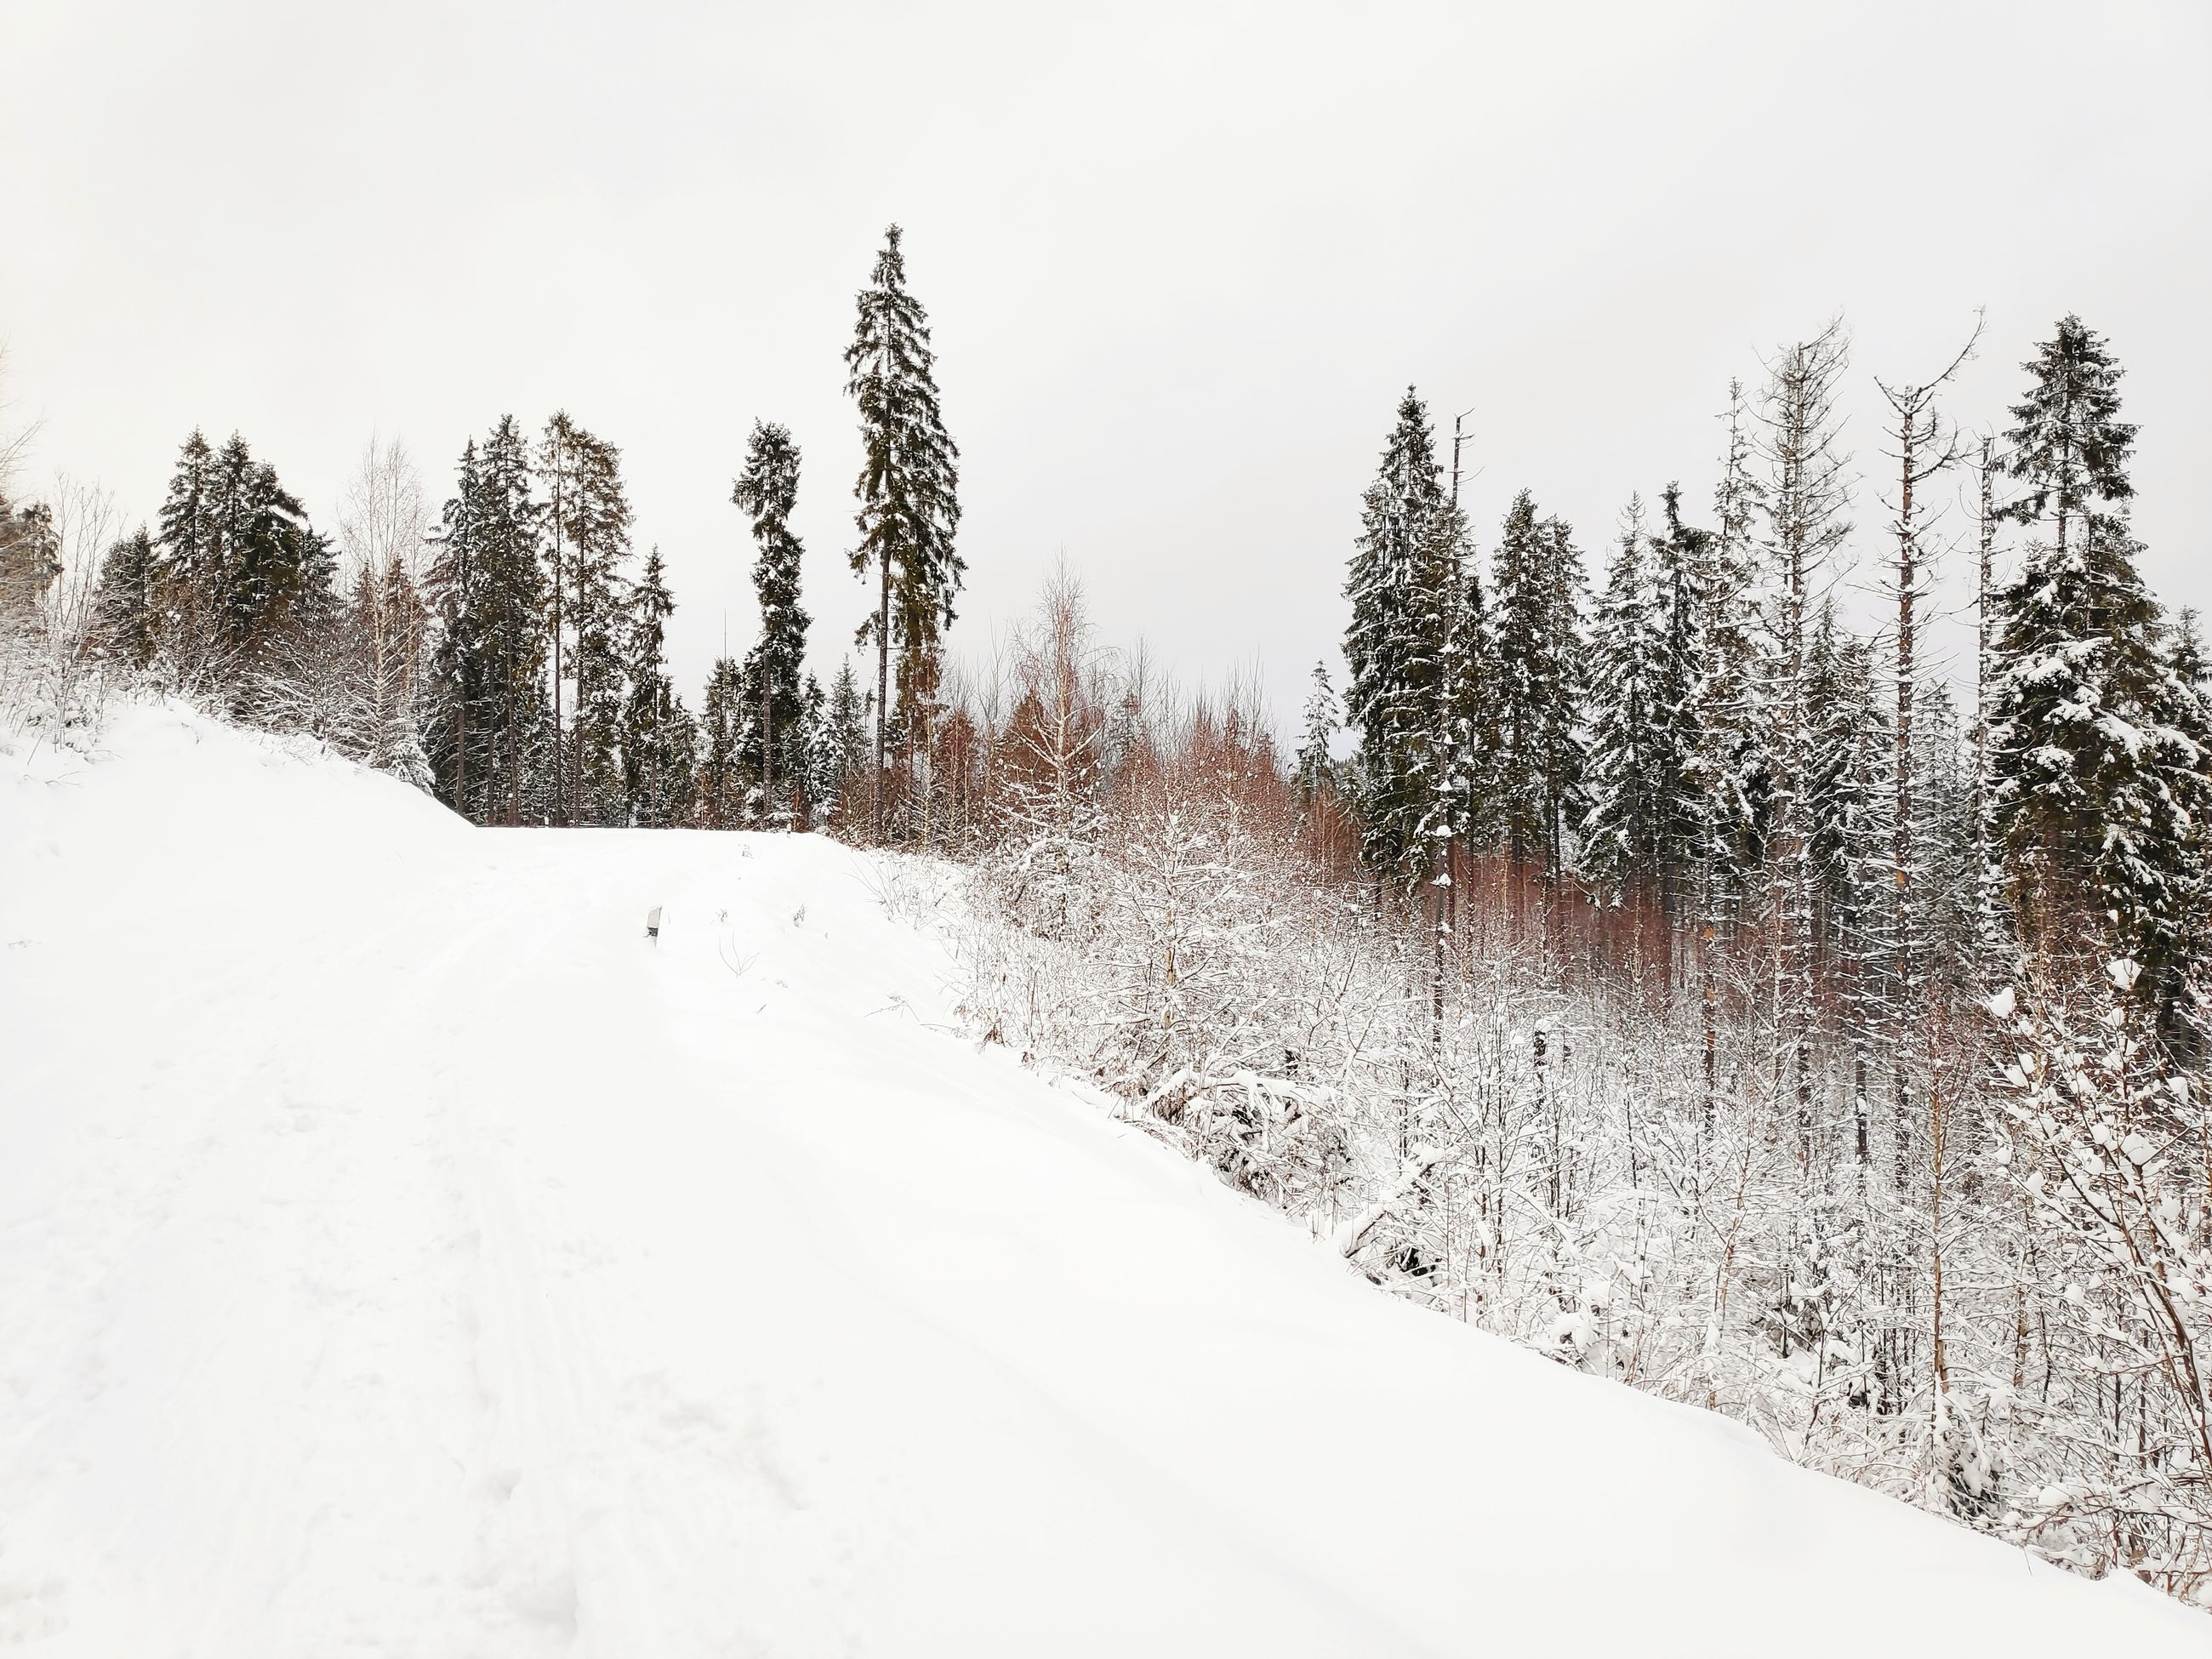 snow, cold temperature, winter, plant, tree, white color, beauty in nature, tranquility, tranquil scene, covering, nature, land, scenics - nature, sky, non-urban scene, no people, day, growth, forest, snowing